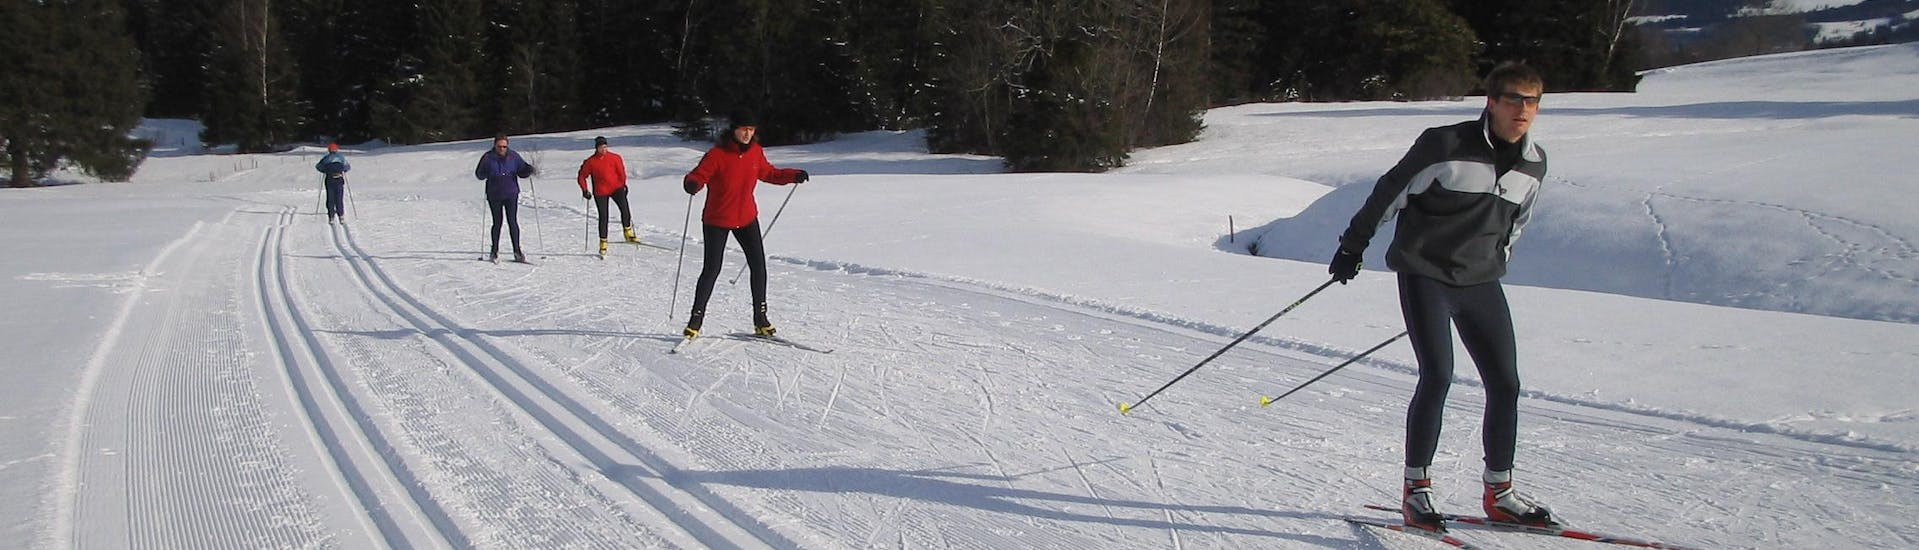 Cross Country Skiing Lessons for All Levels (from 7 y.) with Ski & Snowboard School Ostrachtal - Hero image